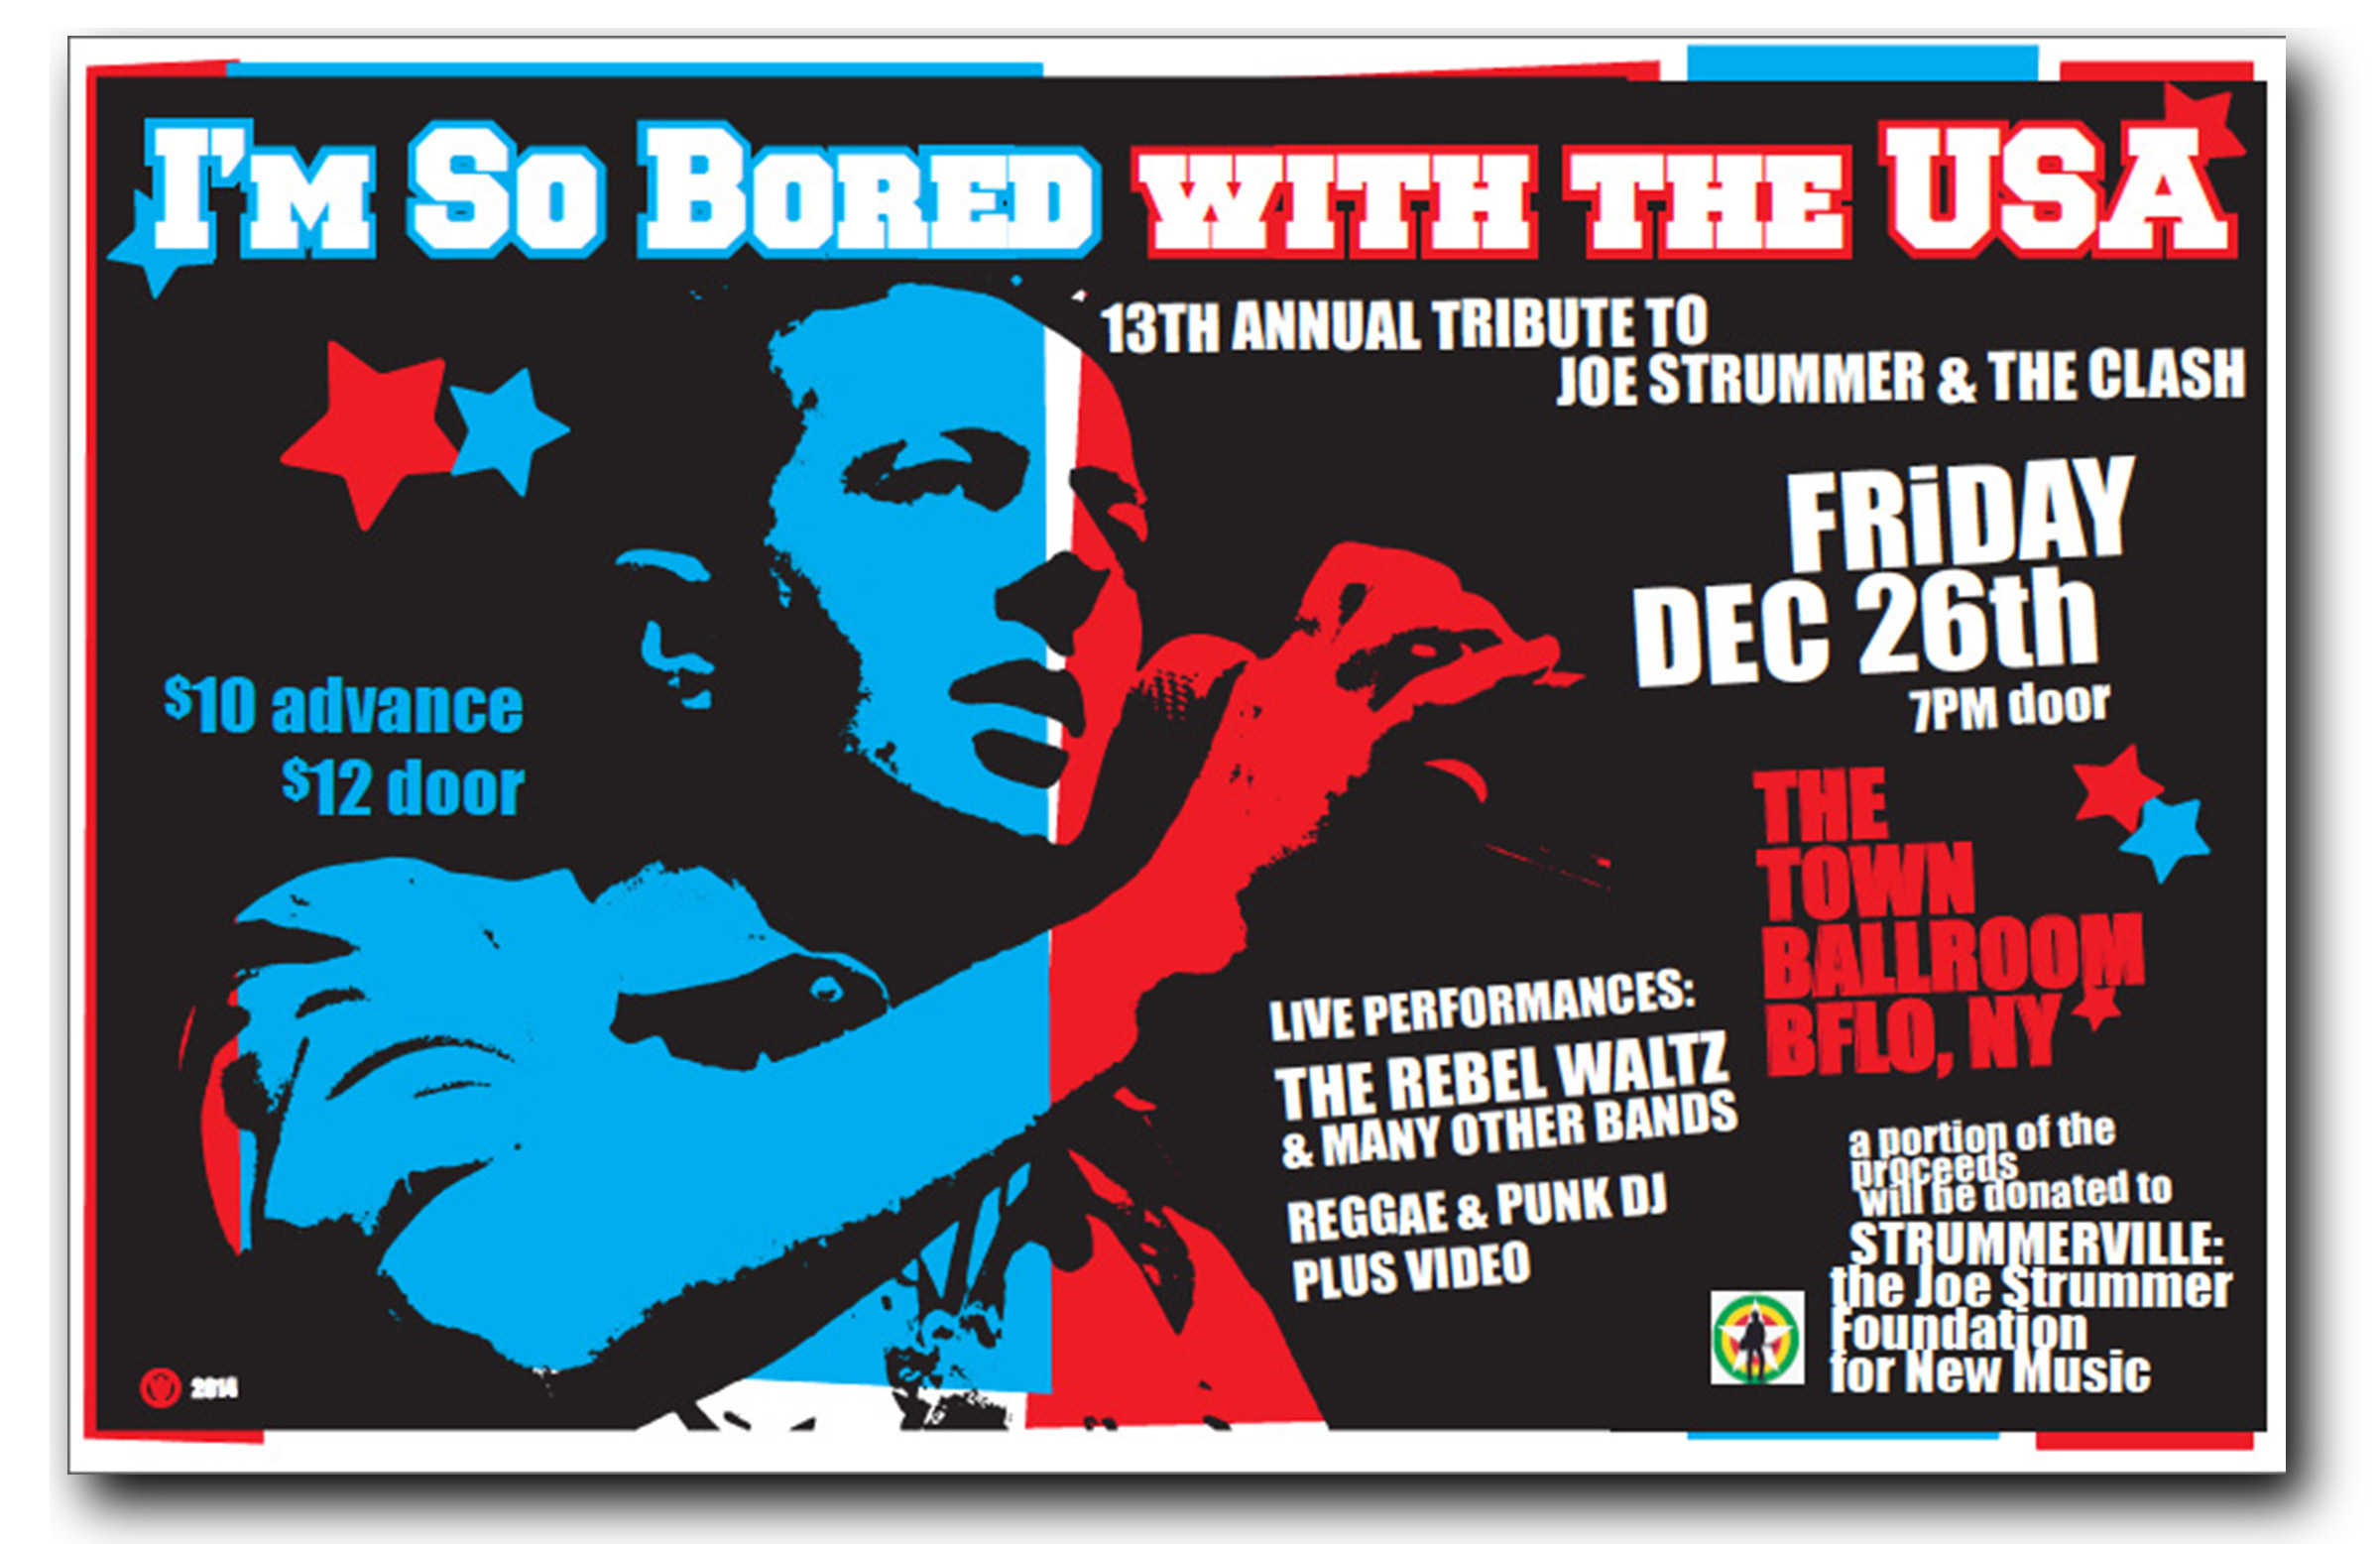 so bored with USA, tribute to Joe Strummer and the clash, town ballroom,buffalo ny, poster design, mark wisz